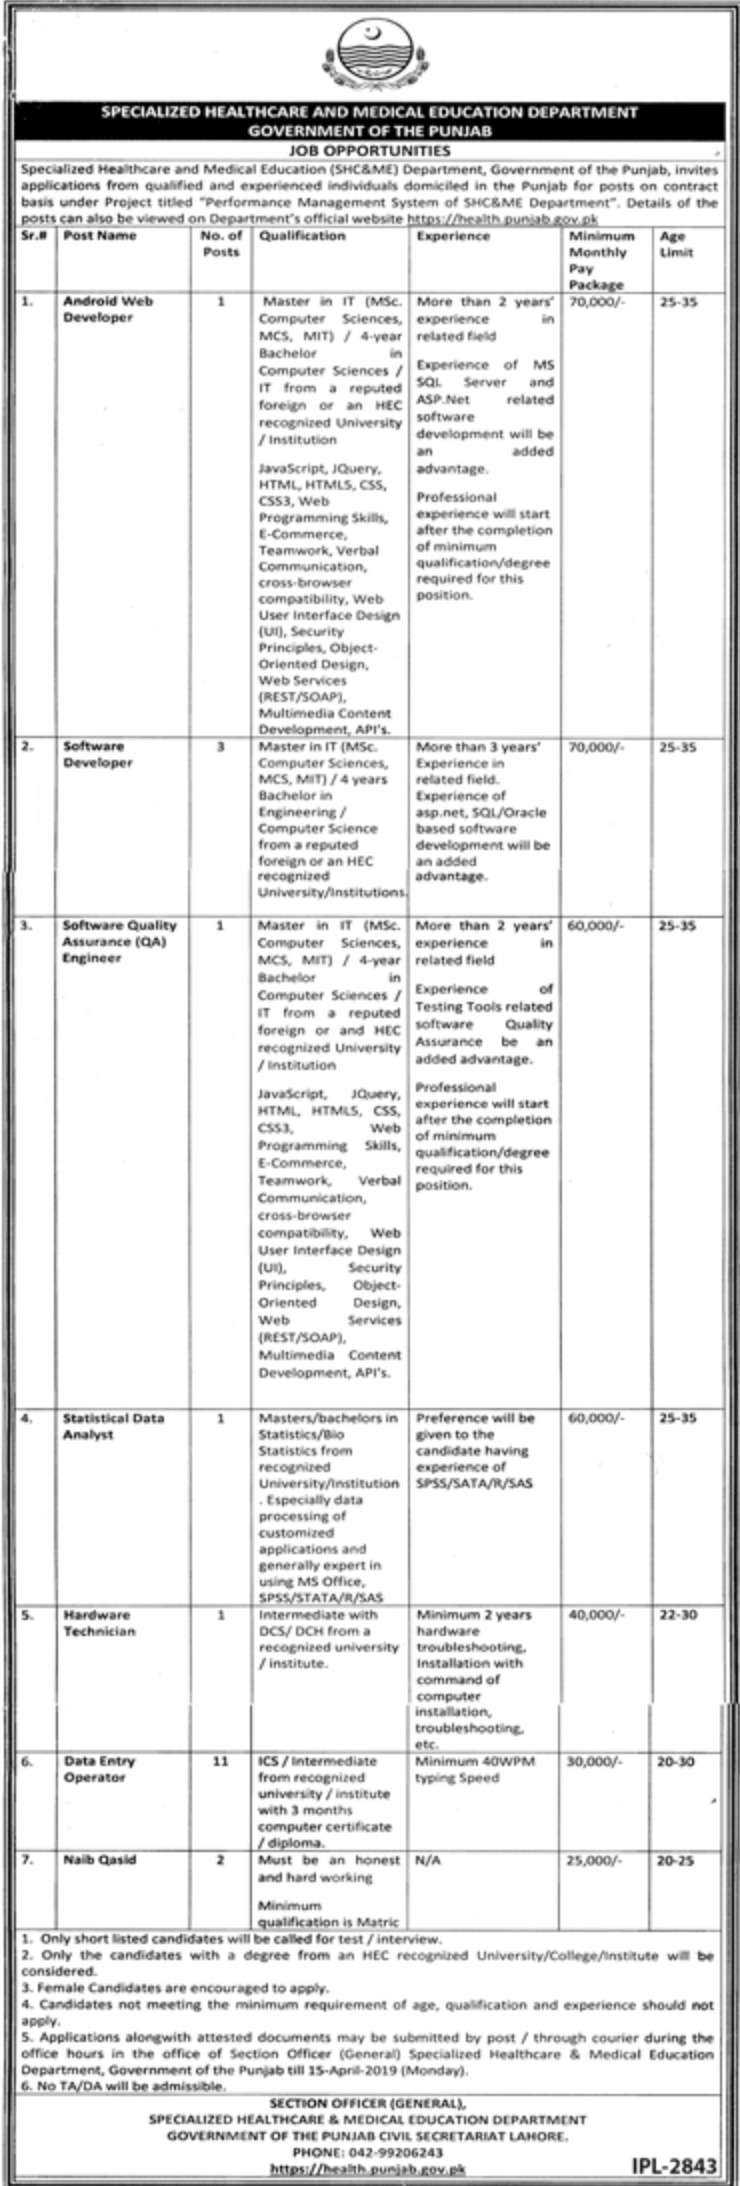 Specialized Healthcare and Medical Education Department Punjab Jobs 2019 LatestSpecialized Healthcare and Medical Education Department Punjab Jobs 2019 Latest